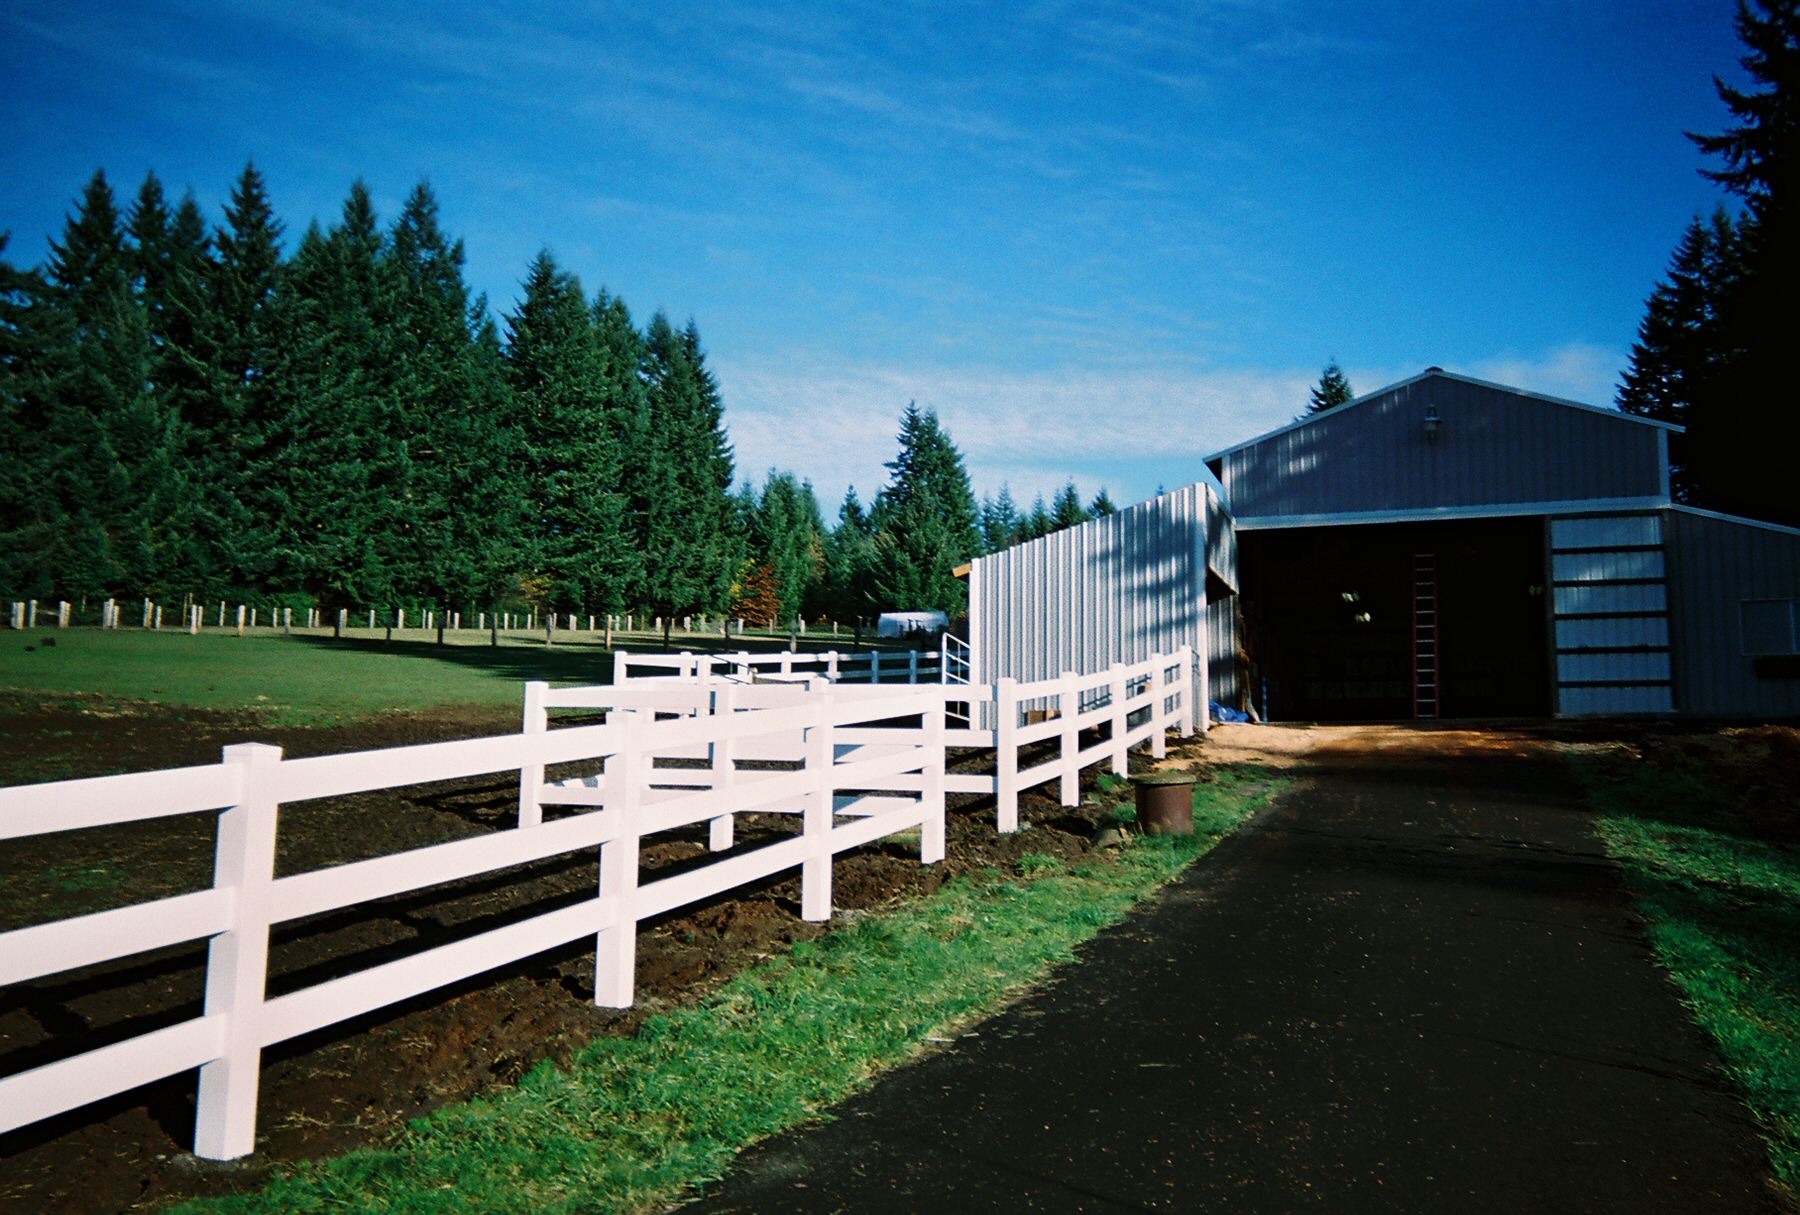 3 Rail White Vinyl Fence. Great option for decoration or working farm. Contact Vancouver Washington's Best Fence Builders. The Fenceman Fence Company installs wood, vinyl, chain link and ornamental iron fences. We also offer materials for the do it yourselfer.